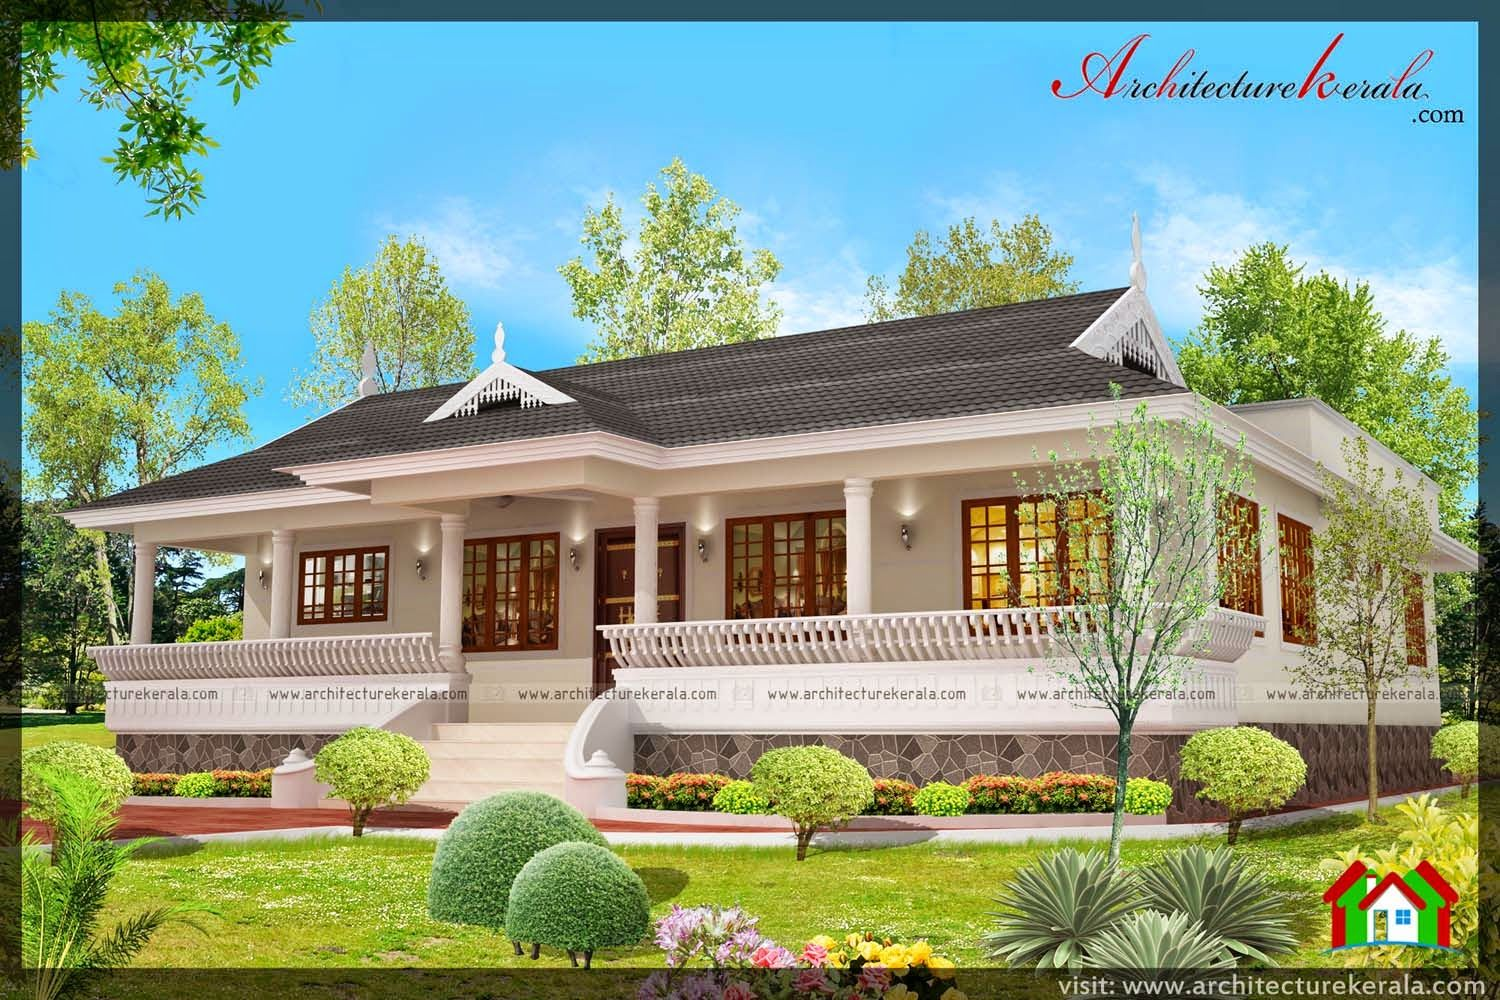 Architecture Design Kerala Model nalukettu style kerala house with nadumuttam - architecture kerala